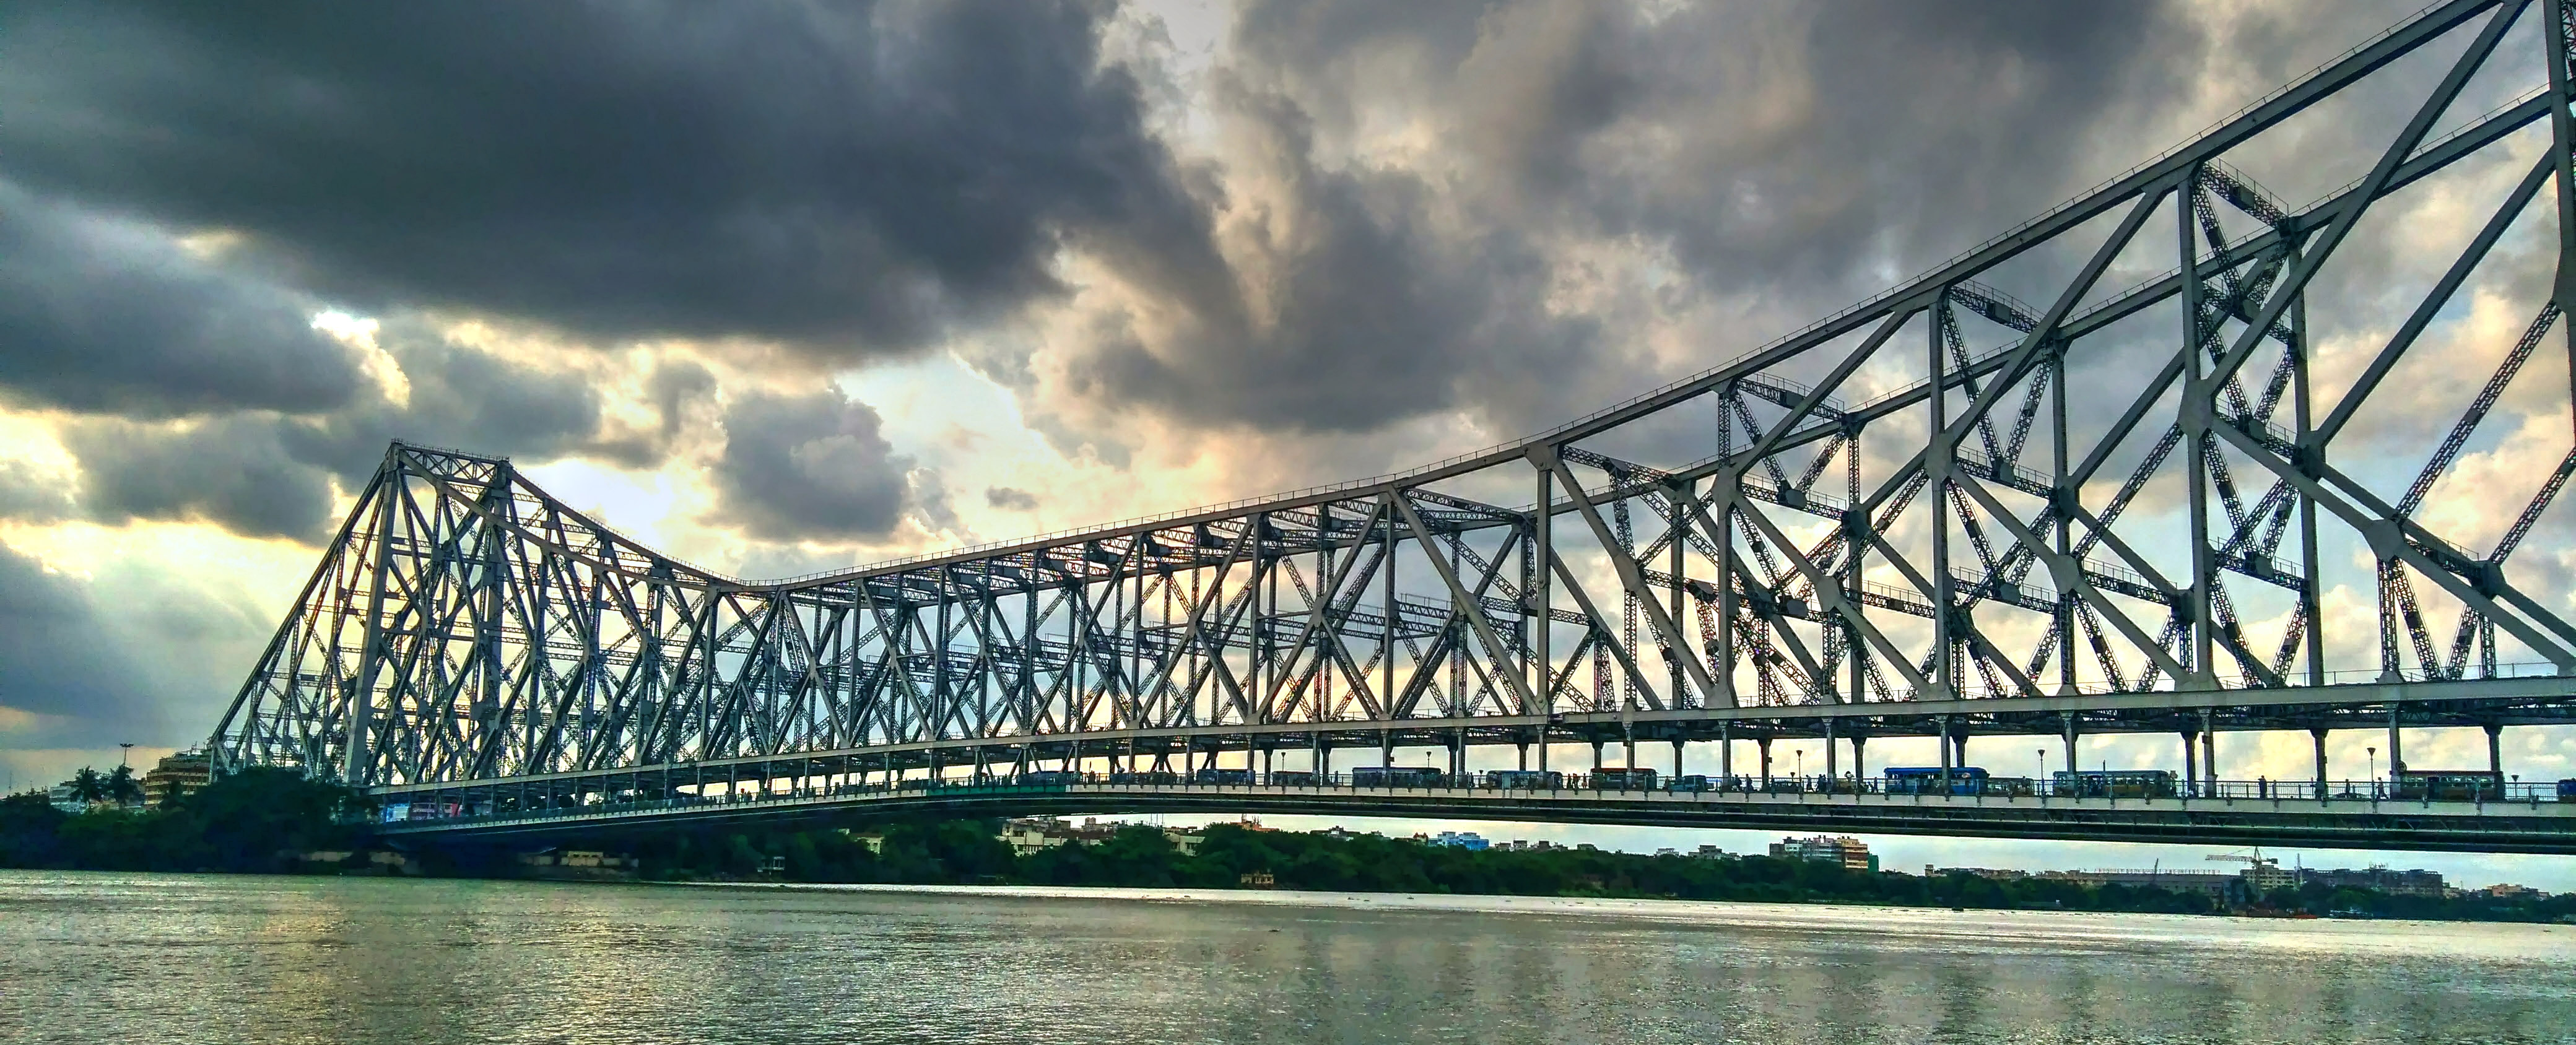 Howrah Bridge - Iconic Bridge in India by Oursamyatra